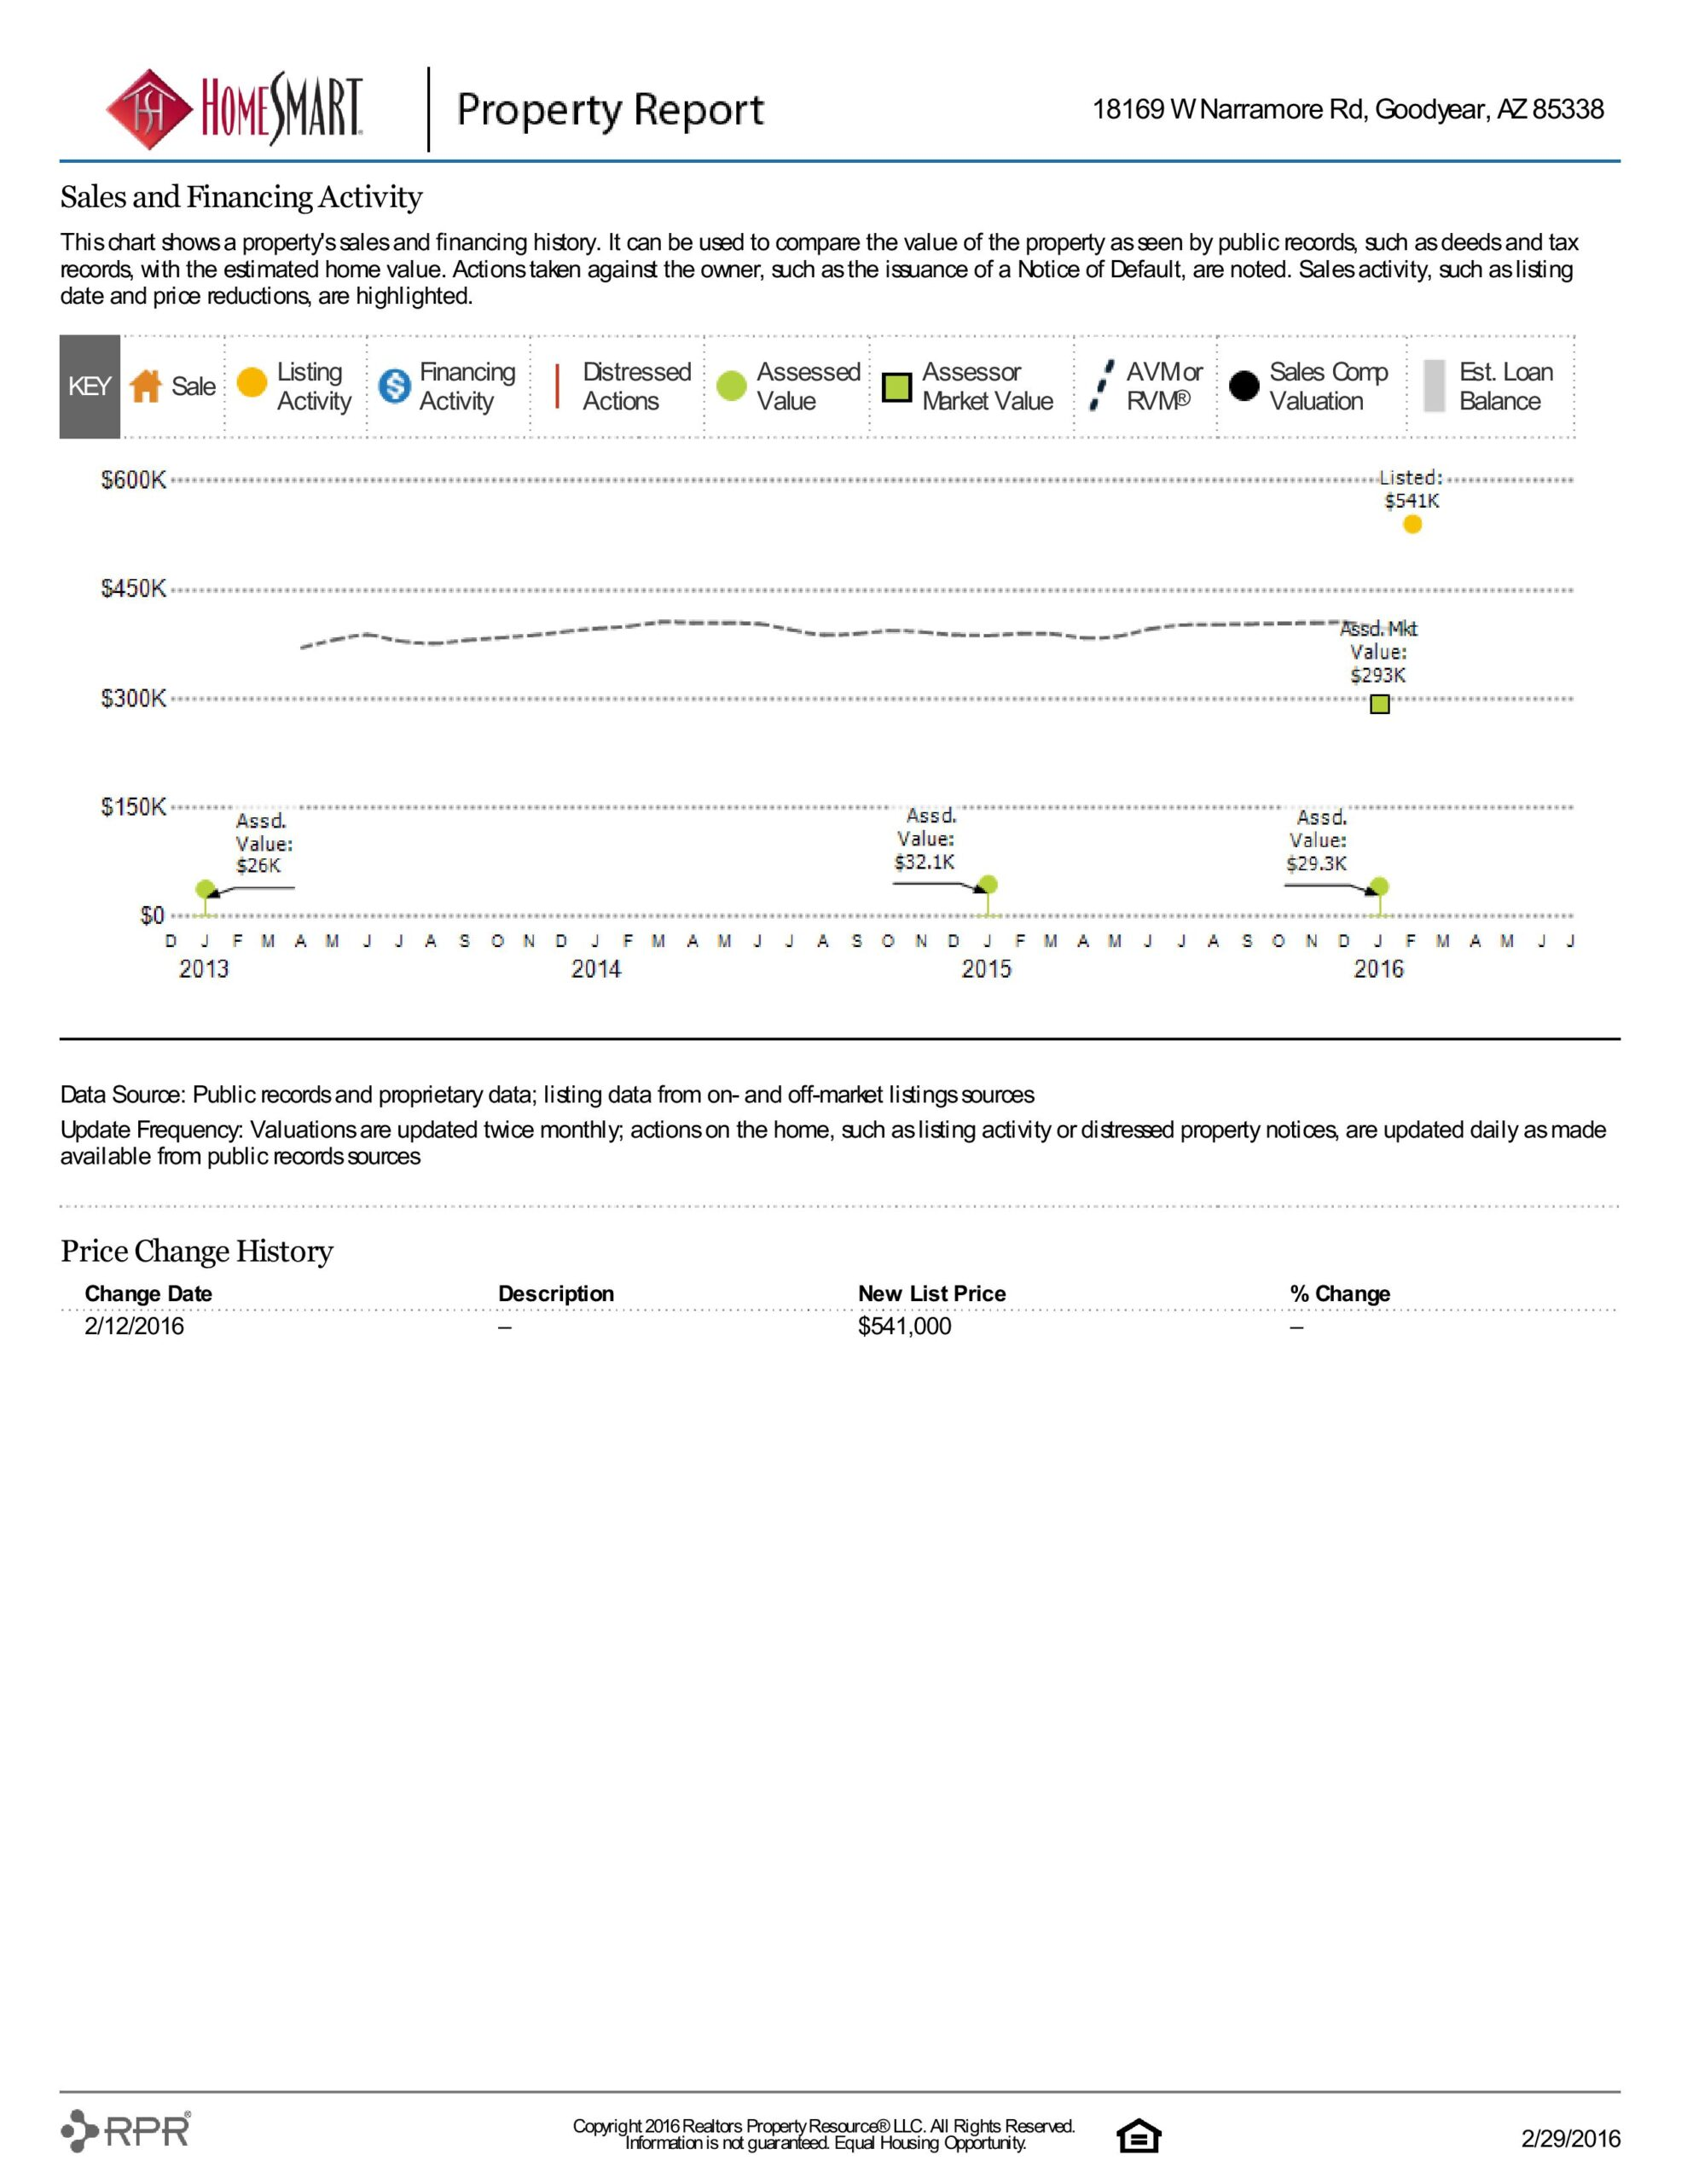 18169 W NARRAMORE RD PROPERTY REPORT-page-012